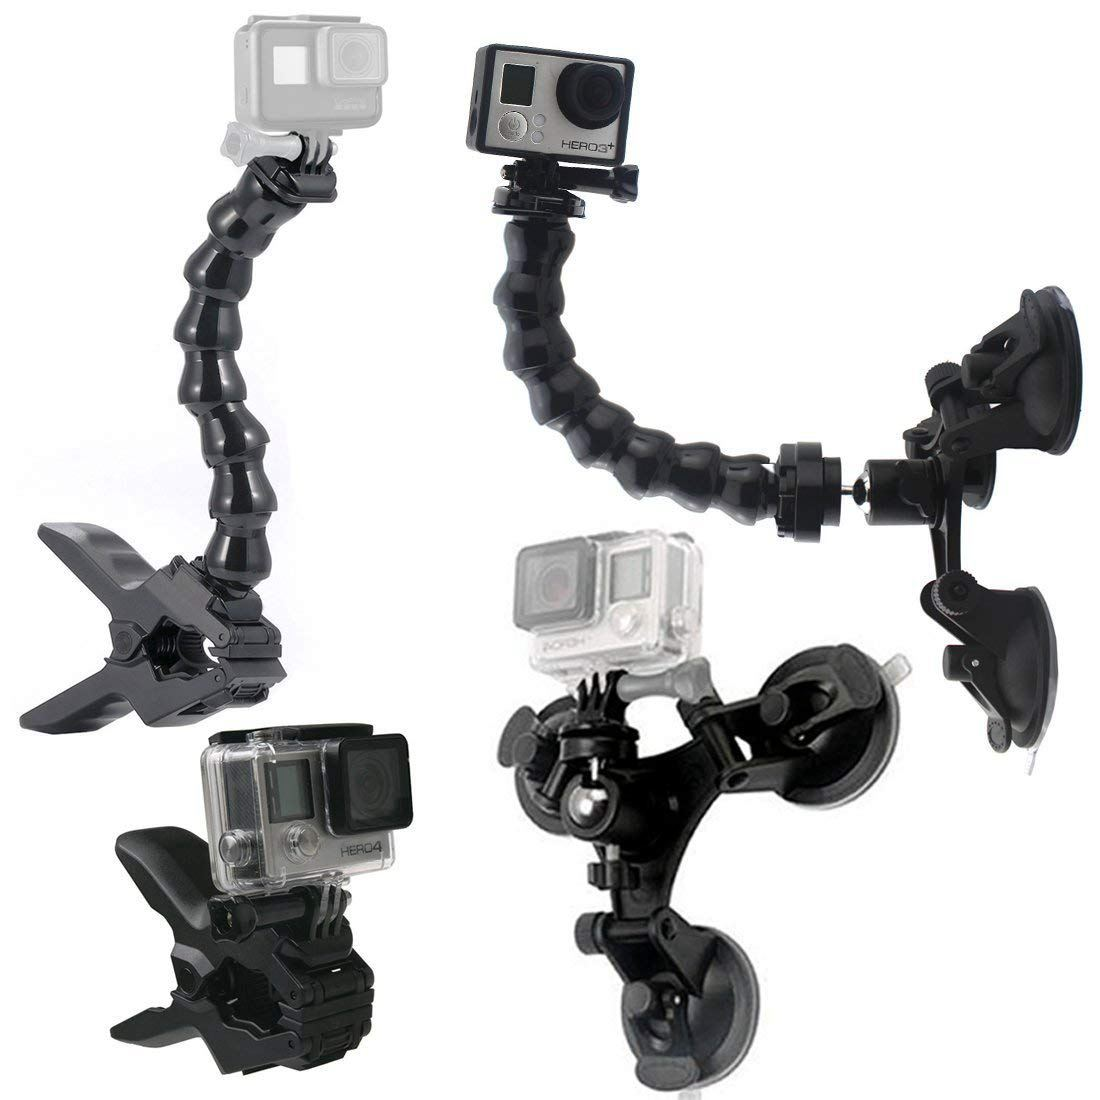 Suction Cup Car Mount Holder with 360 Degree Mount+Jaws Flex Clamp Mount with Adjustable Gooseneck GoPro Accessories for GoPro <font><b>F</b></font> image